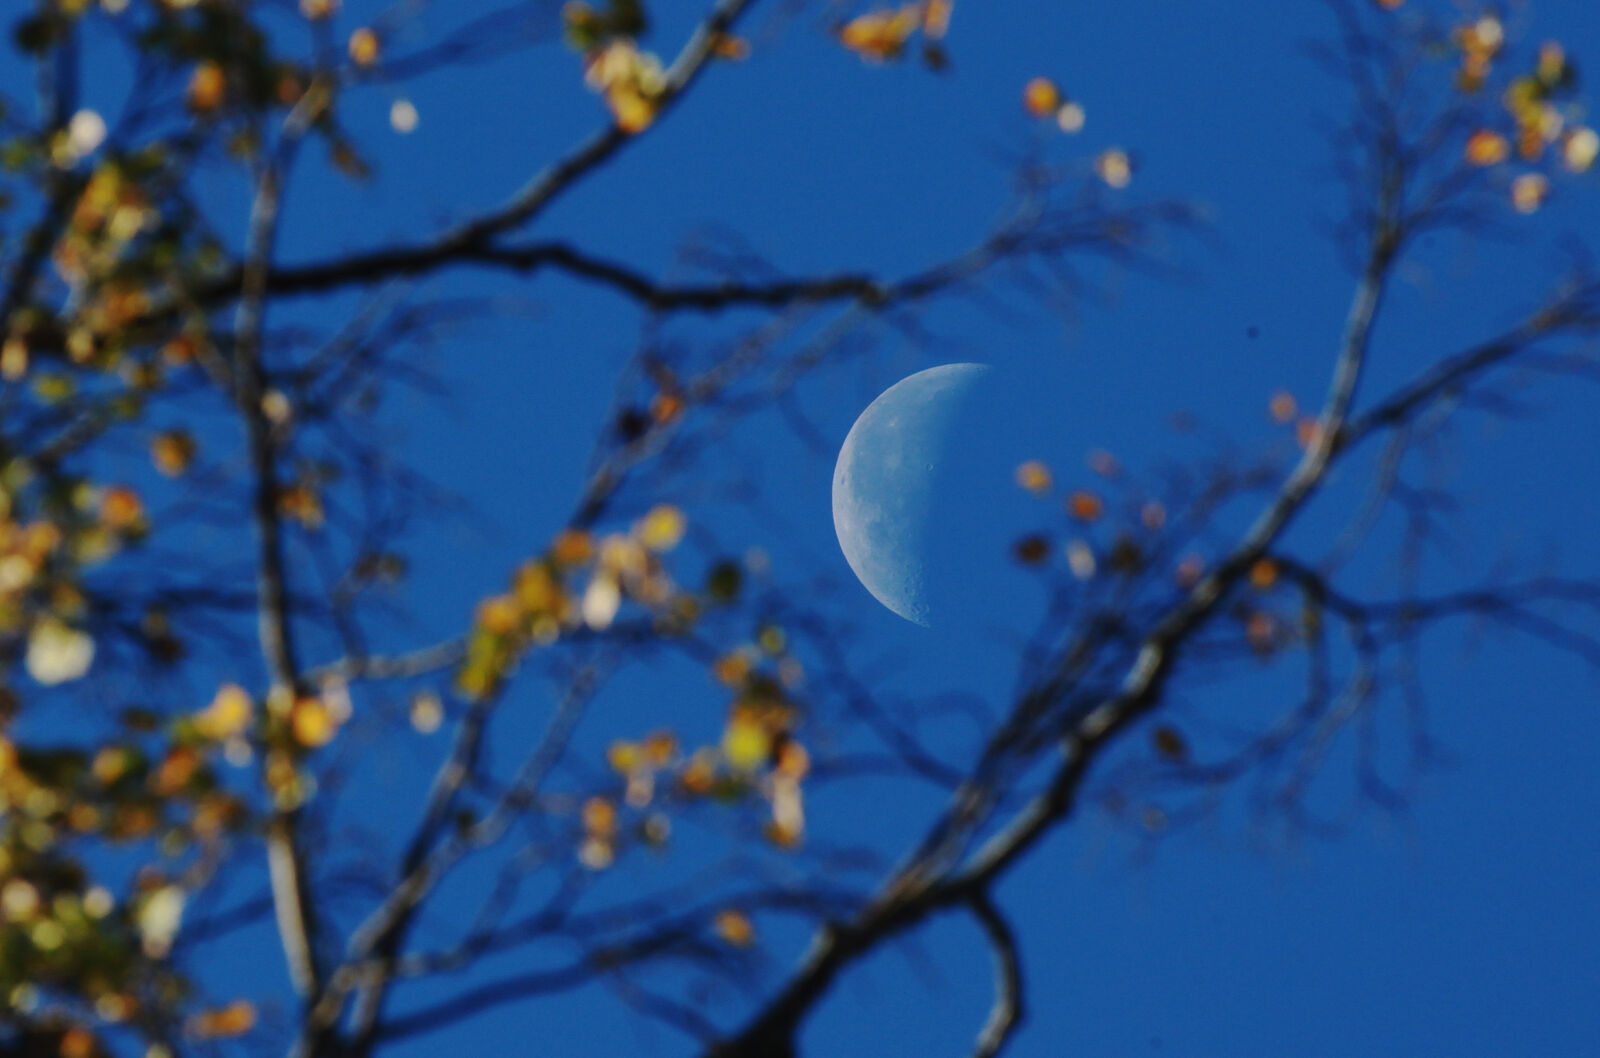 { }The moon is seen behind trees as the early morning sunlight breaks through leaves that are begining to change colour in Victoria Park on October 12, 2009 in Bath, England.{ } (Photo by Matt Cardy/Getty Images)